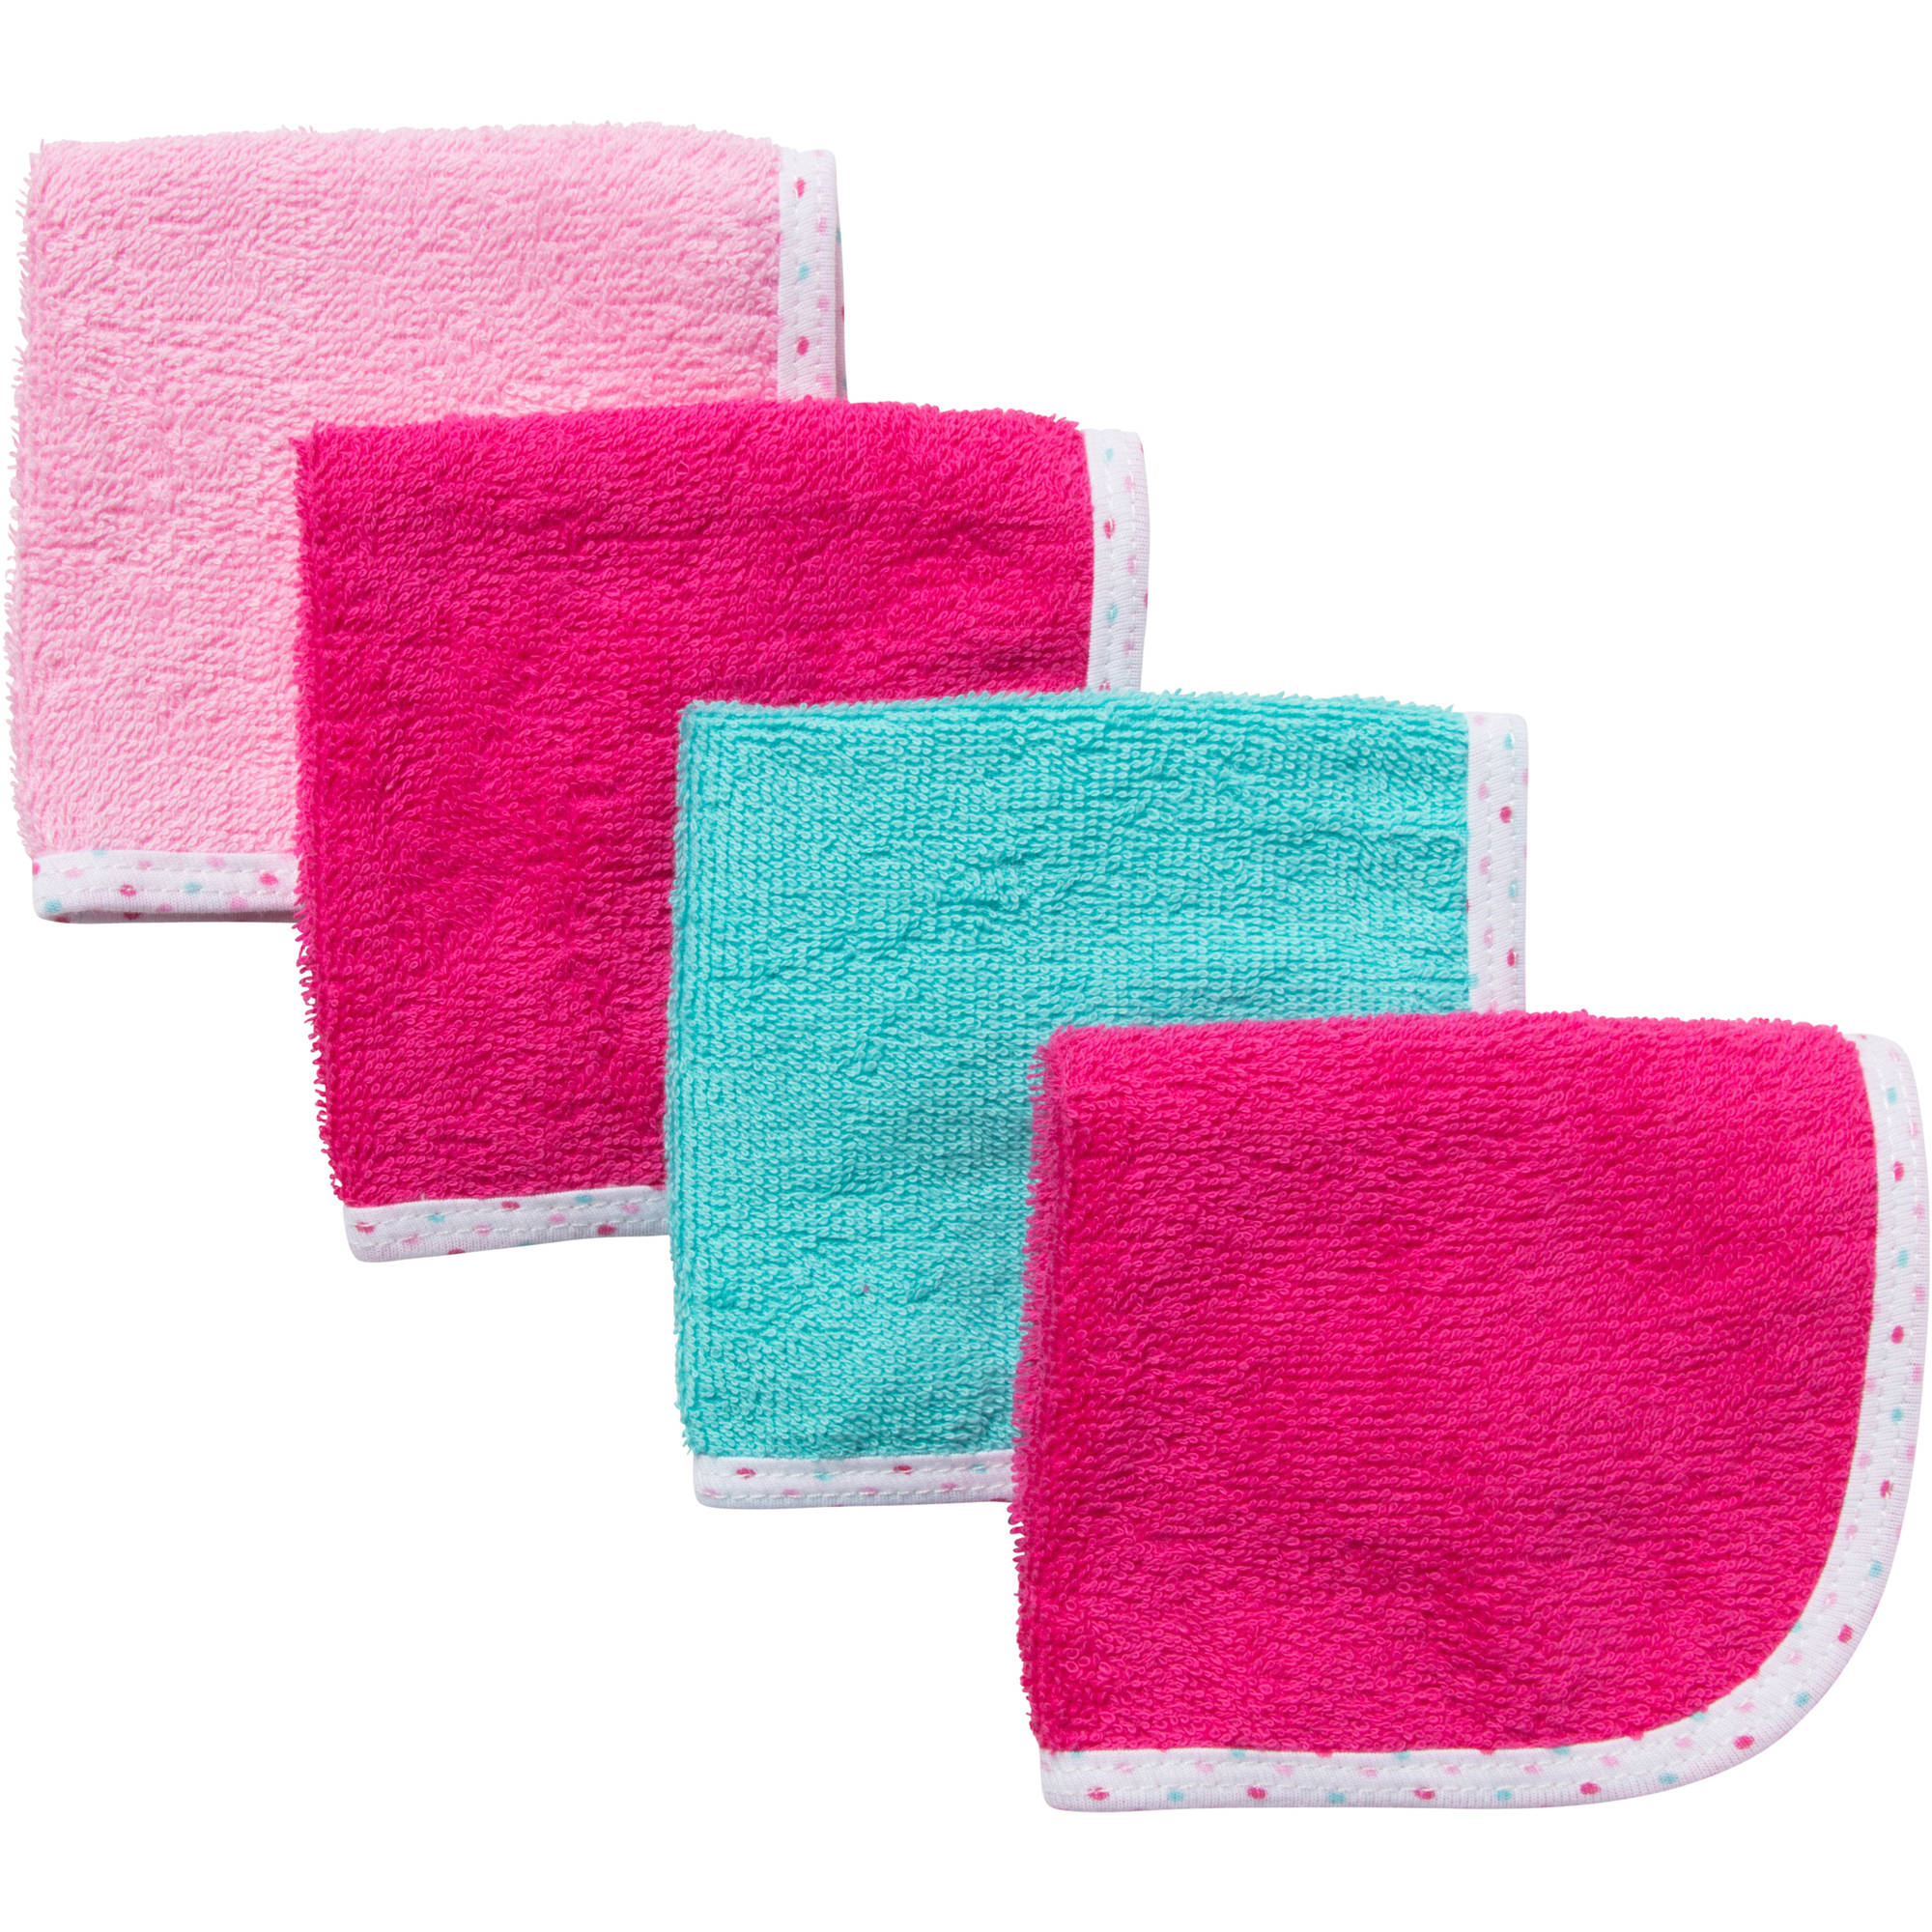 Gerber Newborn Baby Girl Solid Woven Washcloths - 4 Pack